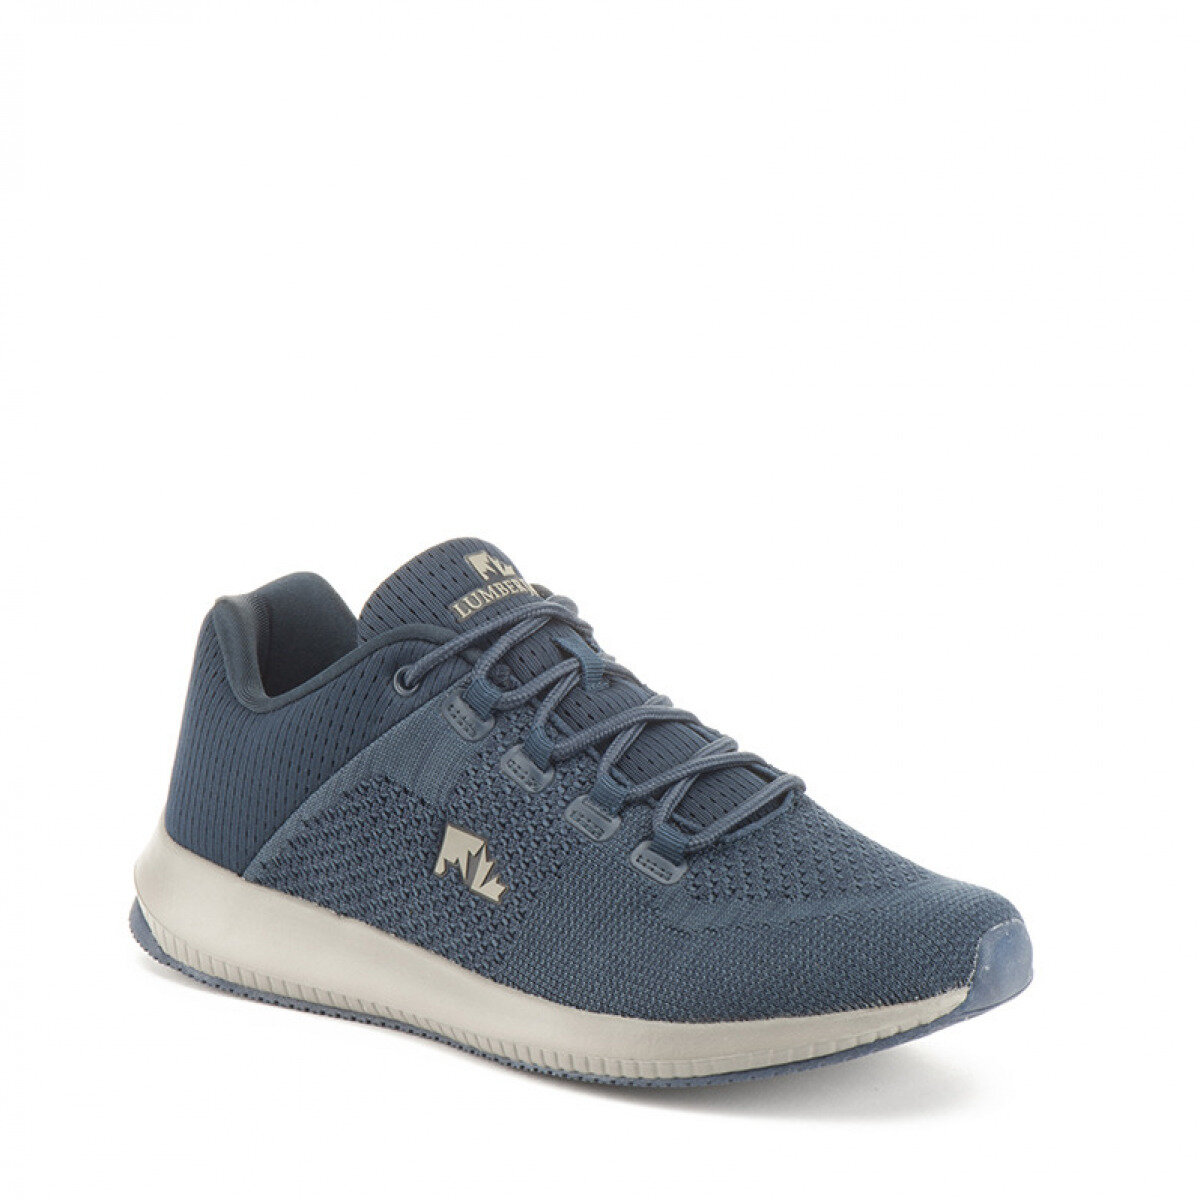 ALLE NAVY BLUE Man Running shoes